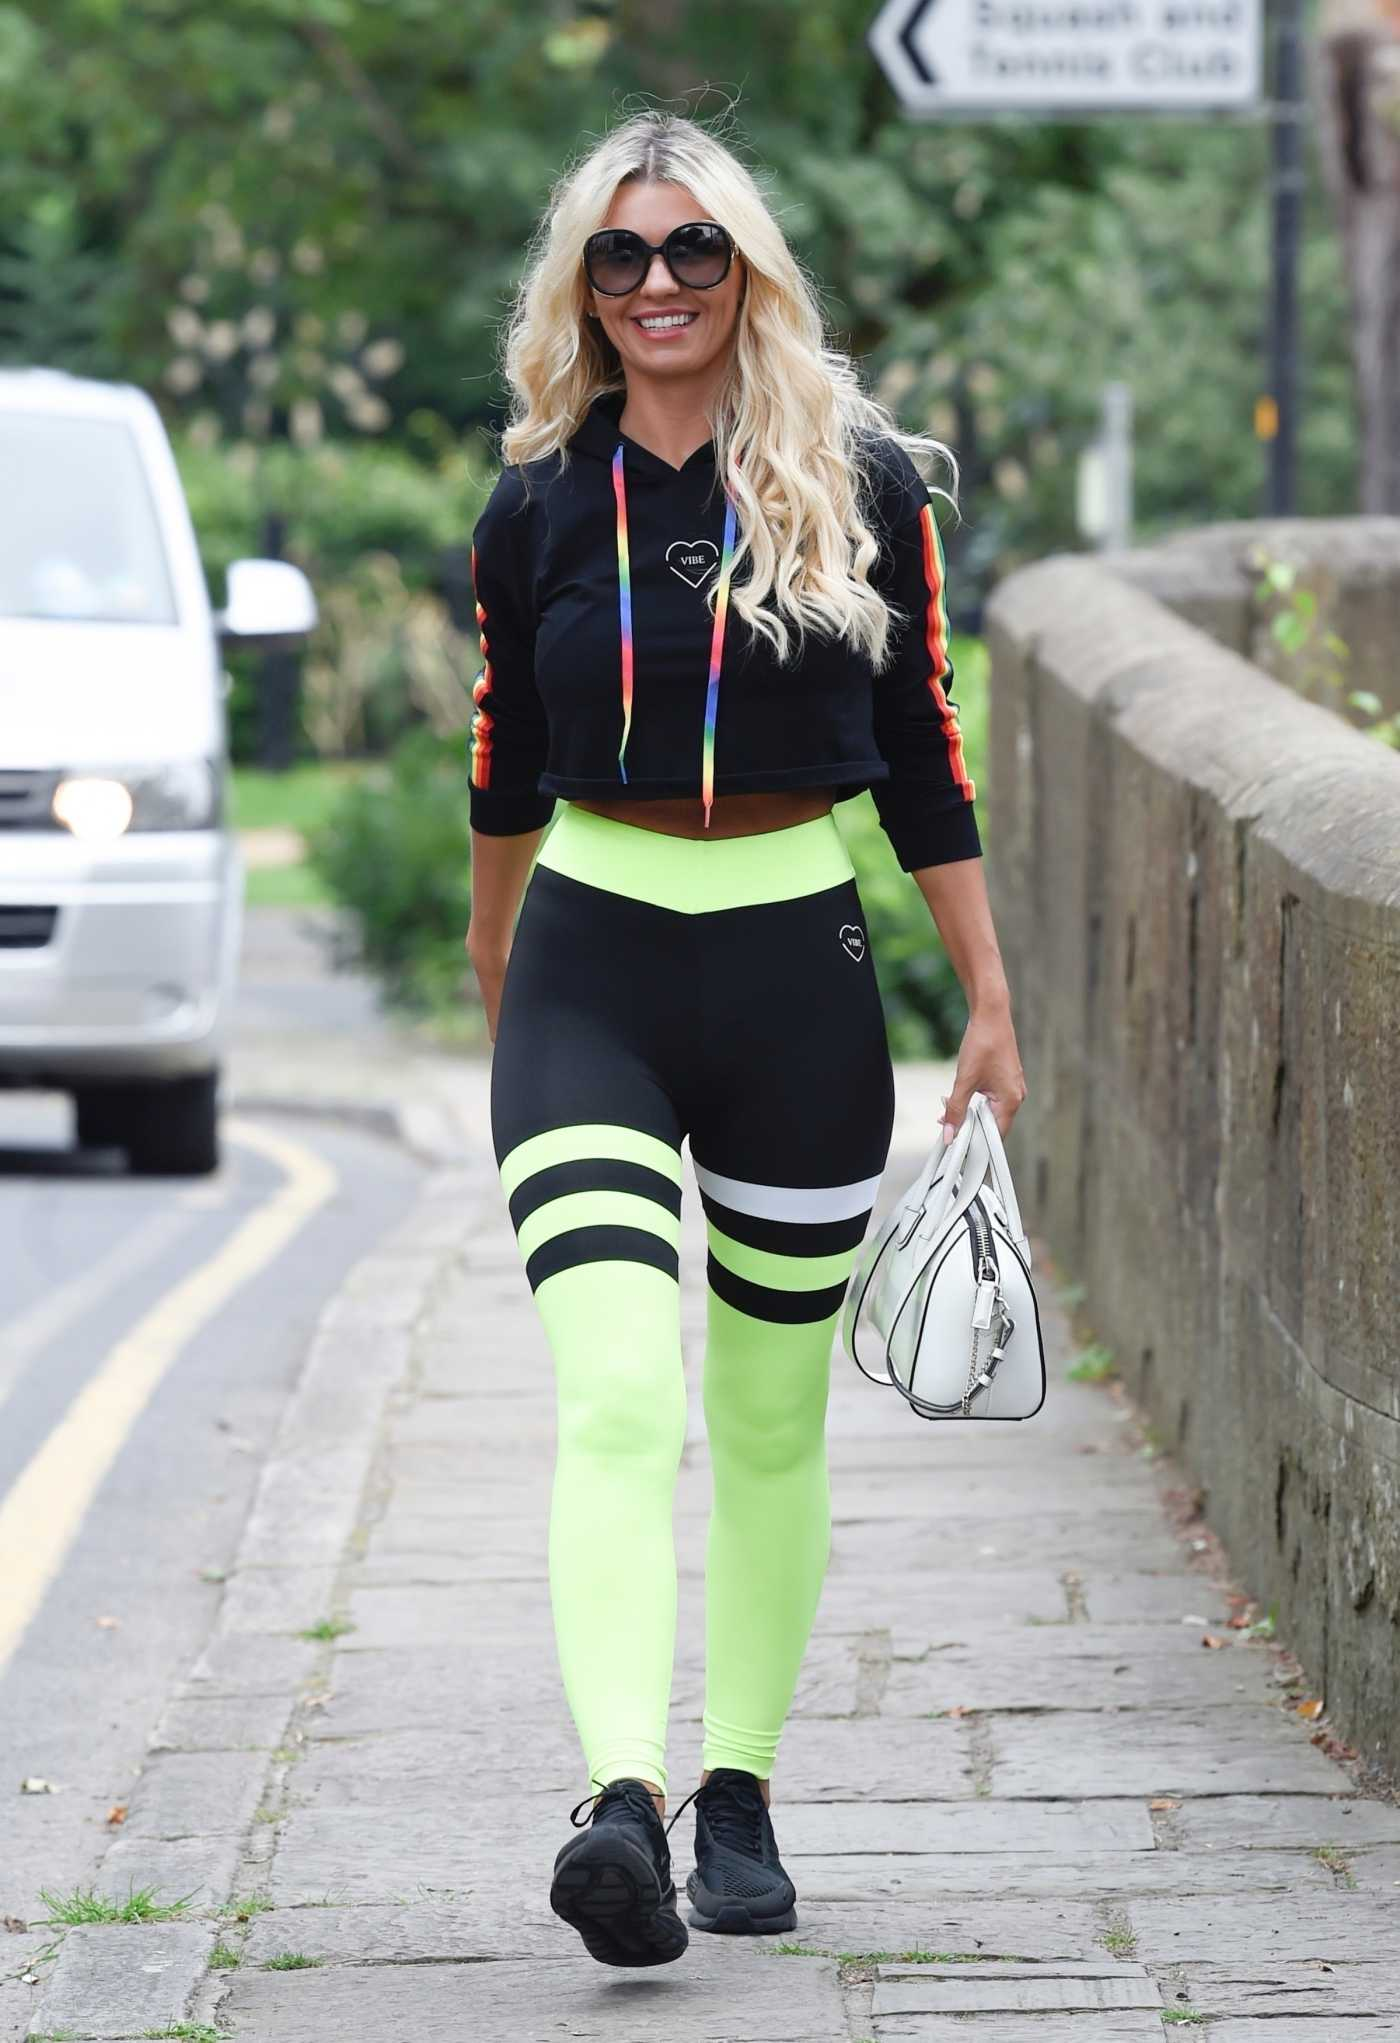 Christine McGuinness in a Black Sneakers Was Seen Out in Cheshire 08/15/2020